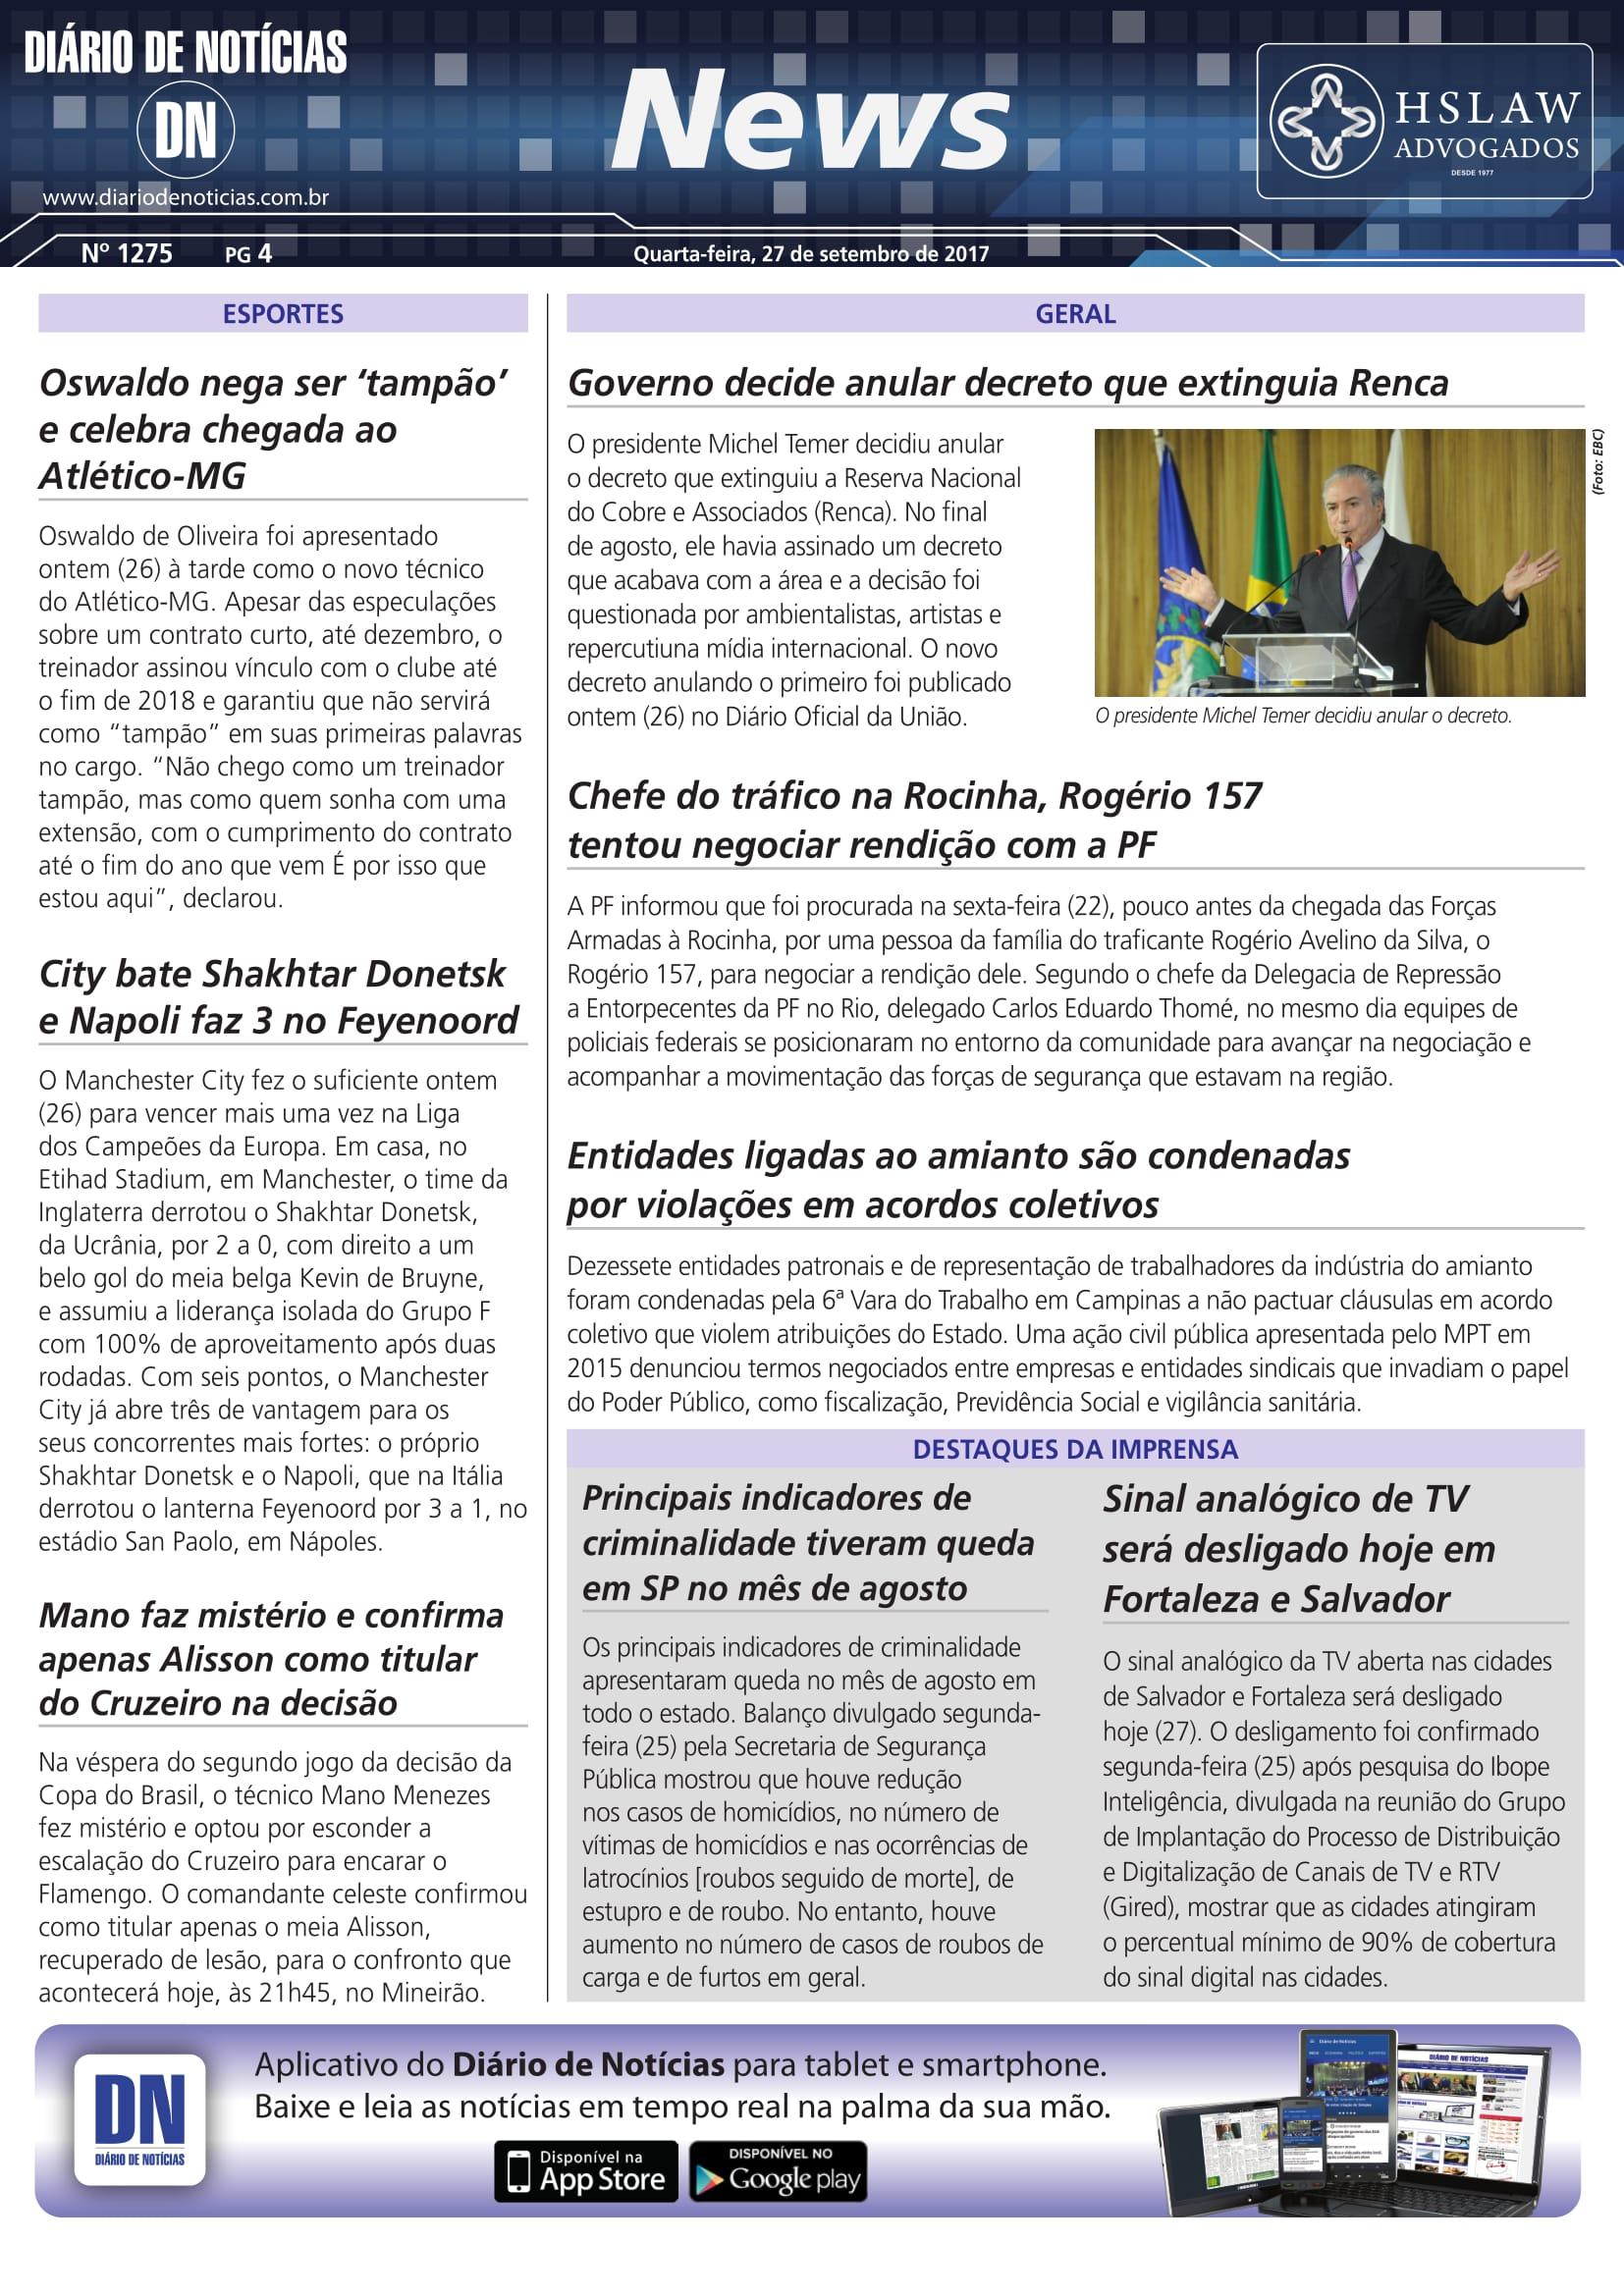 NewsPaper_1275_DN_270917-4